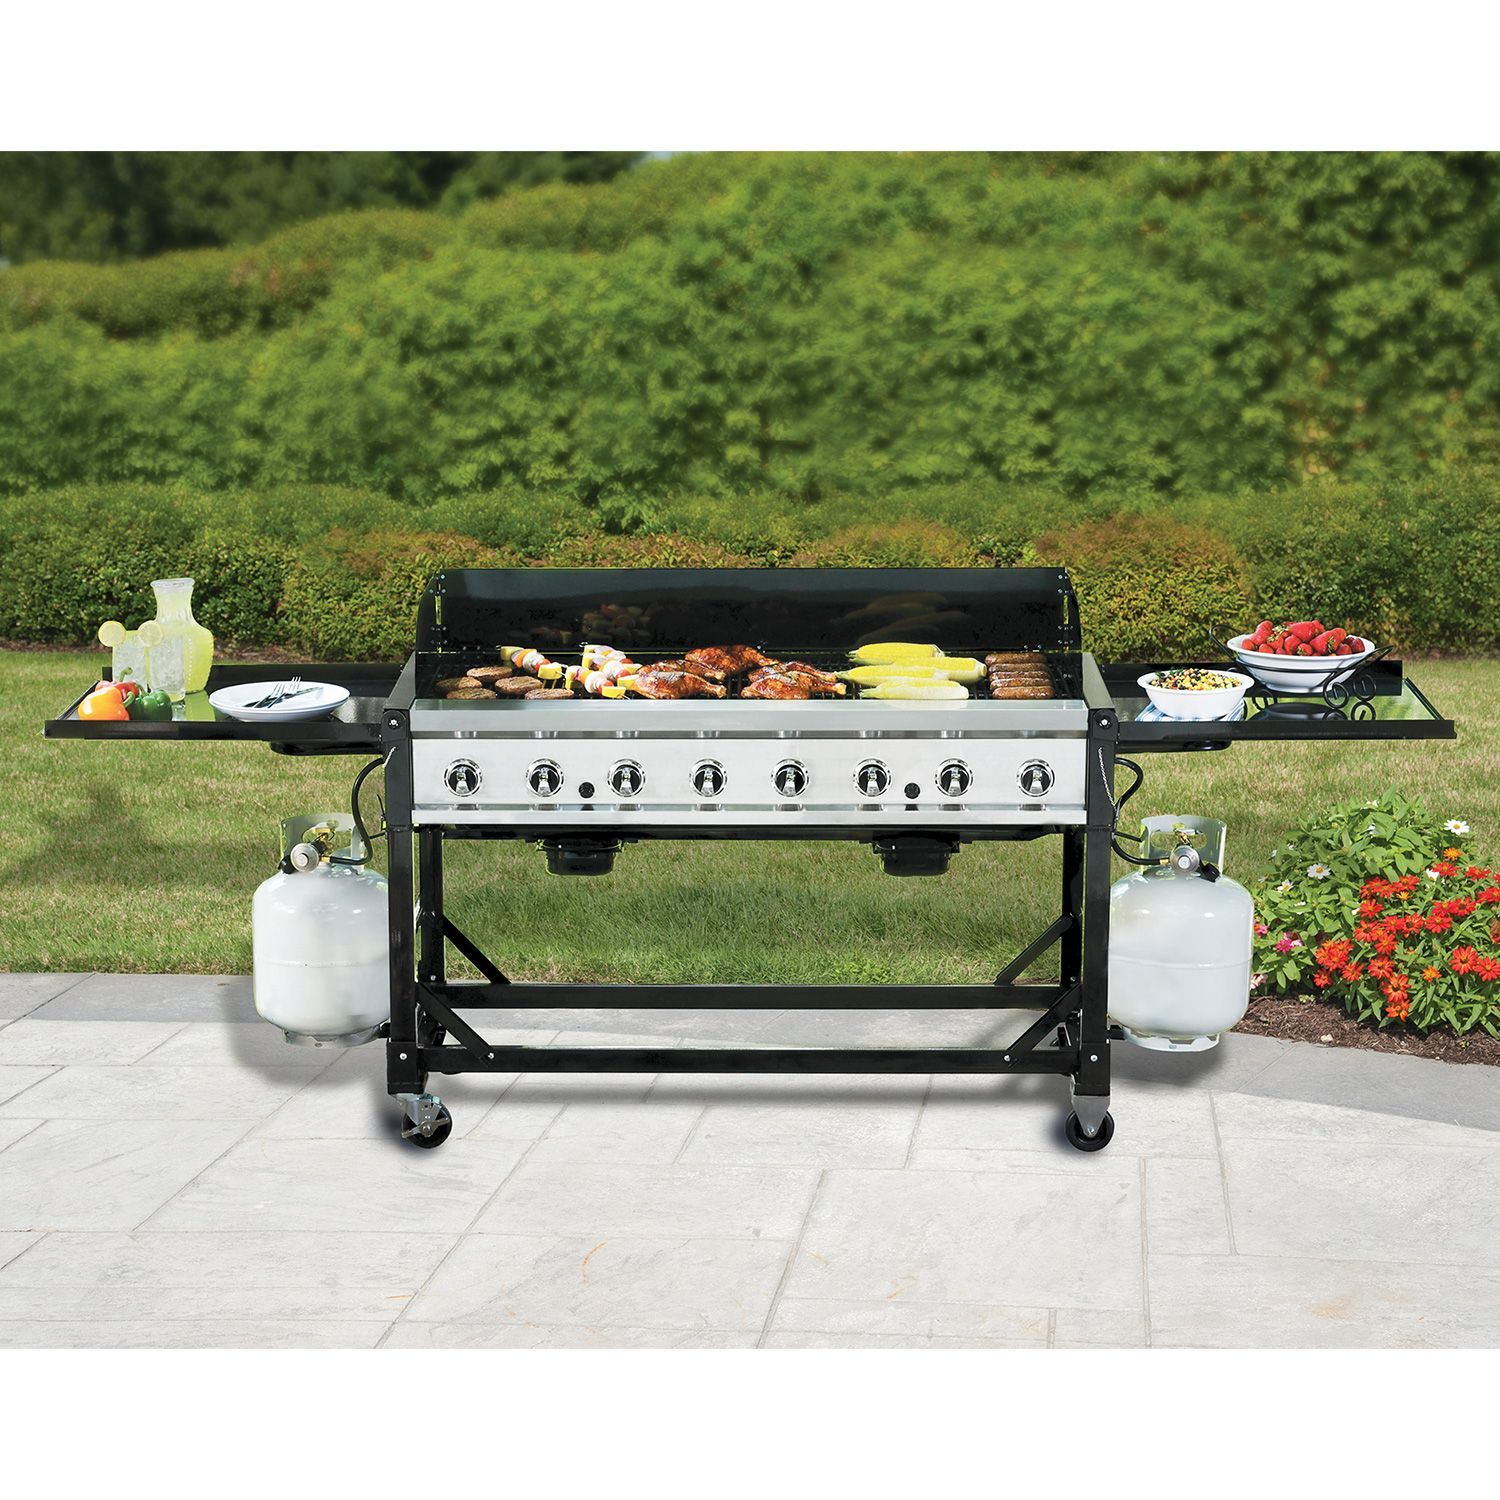 party time is no problem with this gas grill as you can cook up to